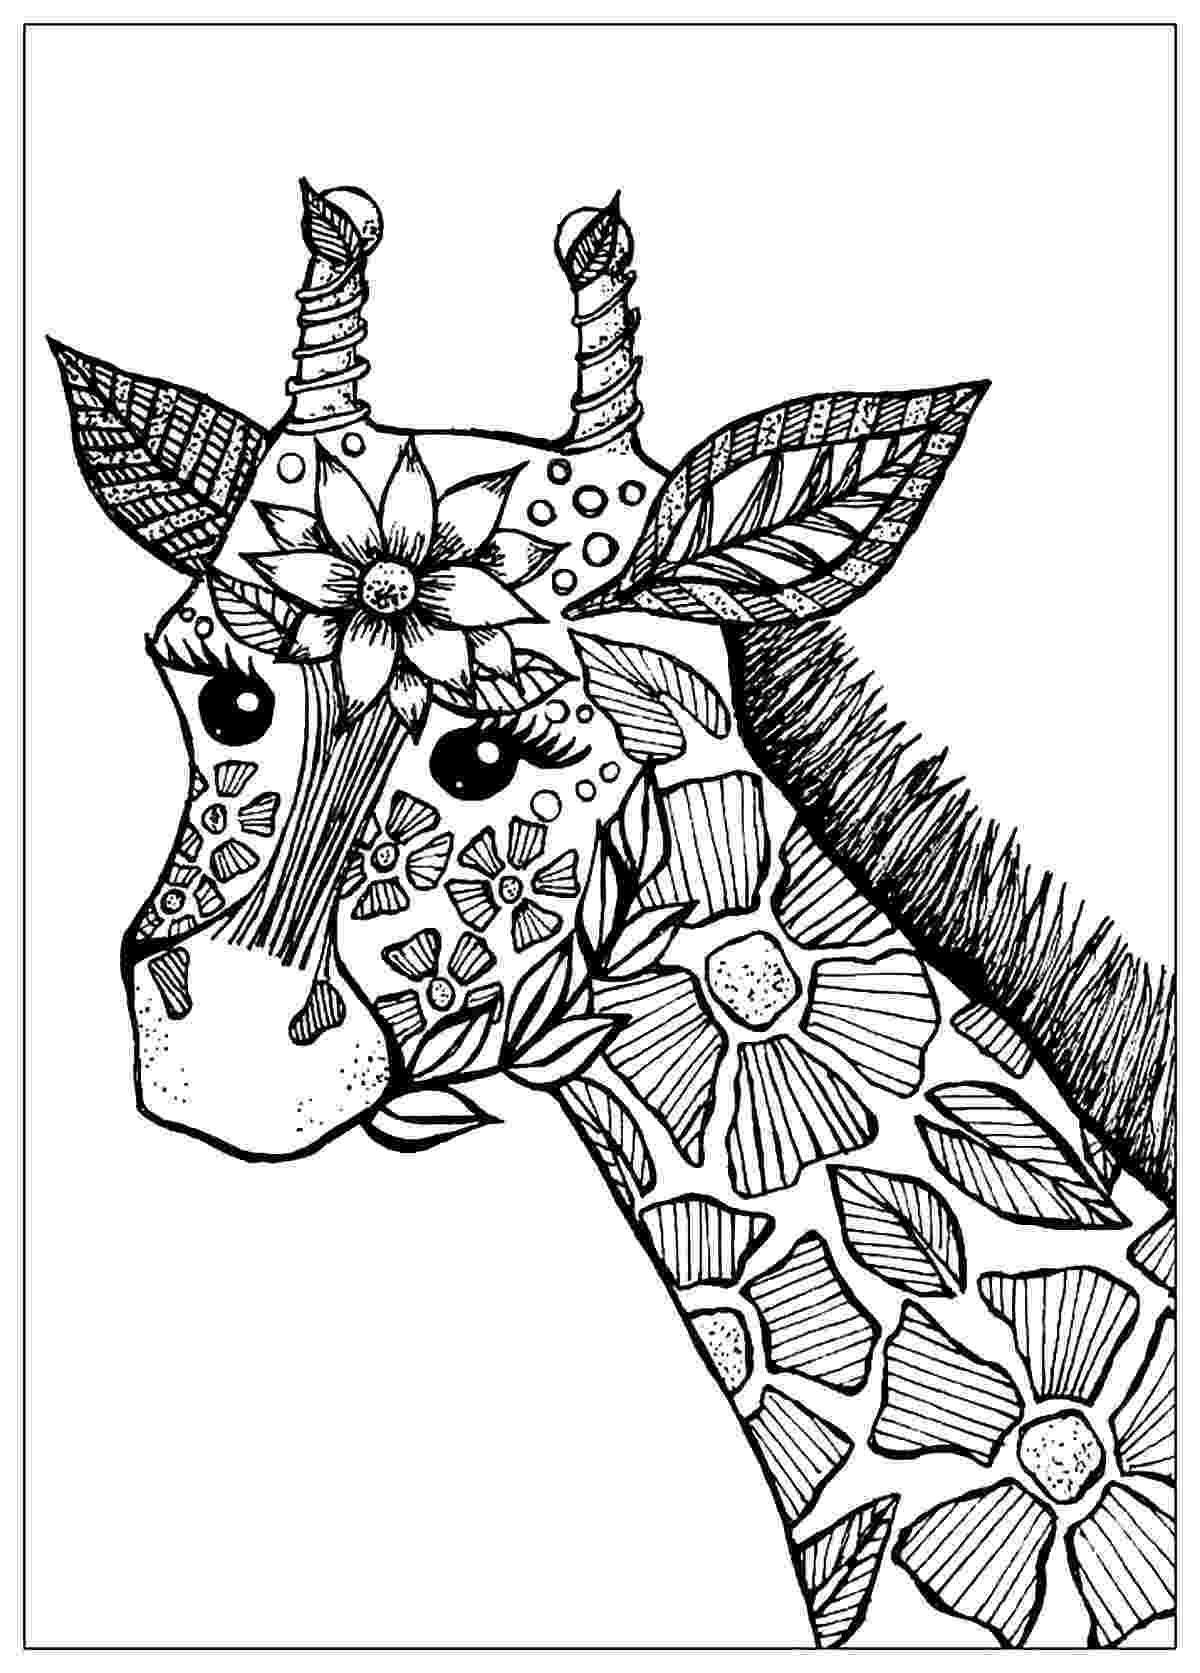 coloring pages for adults to print flowers giraffe head with flowers giraffes adult coloring pages for pages coloring print adults flowers to